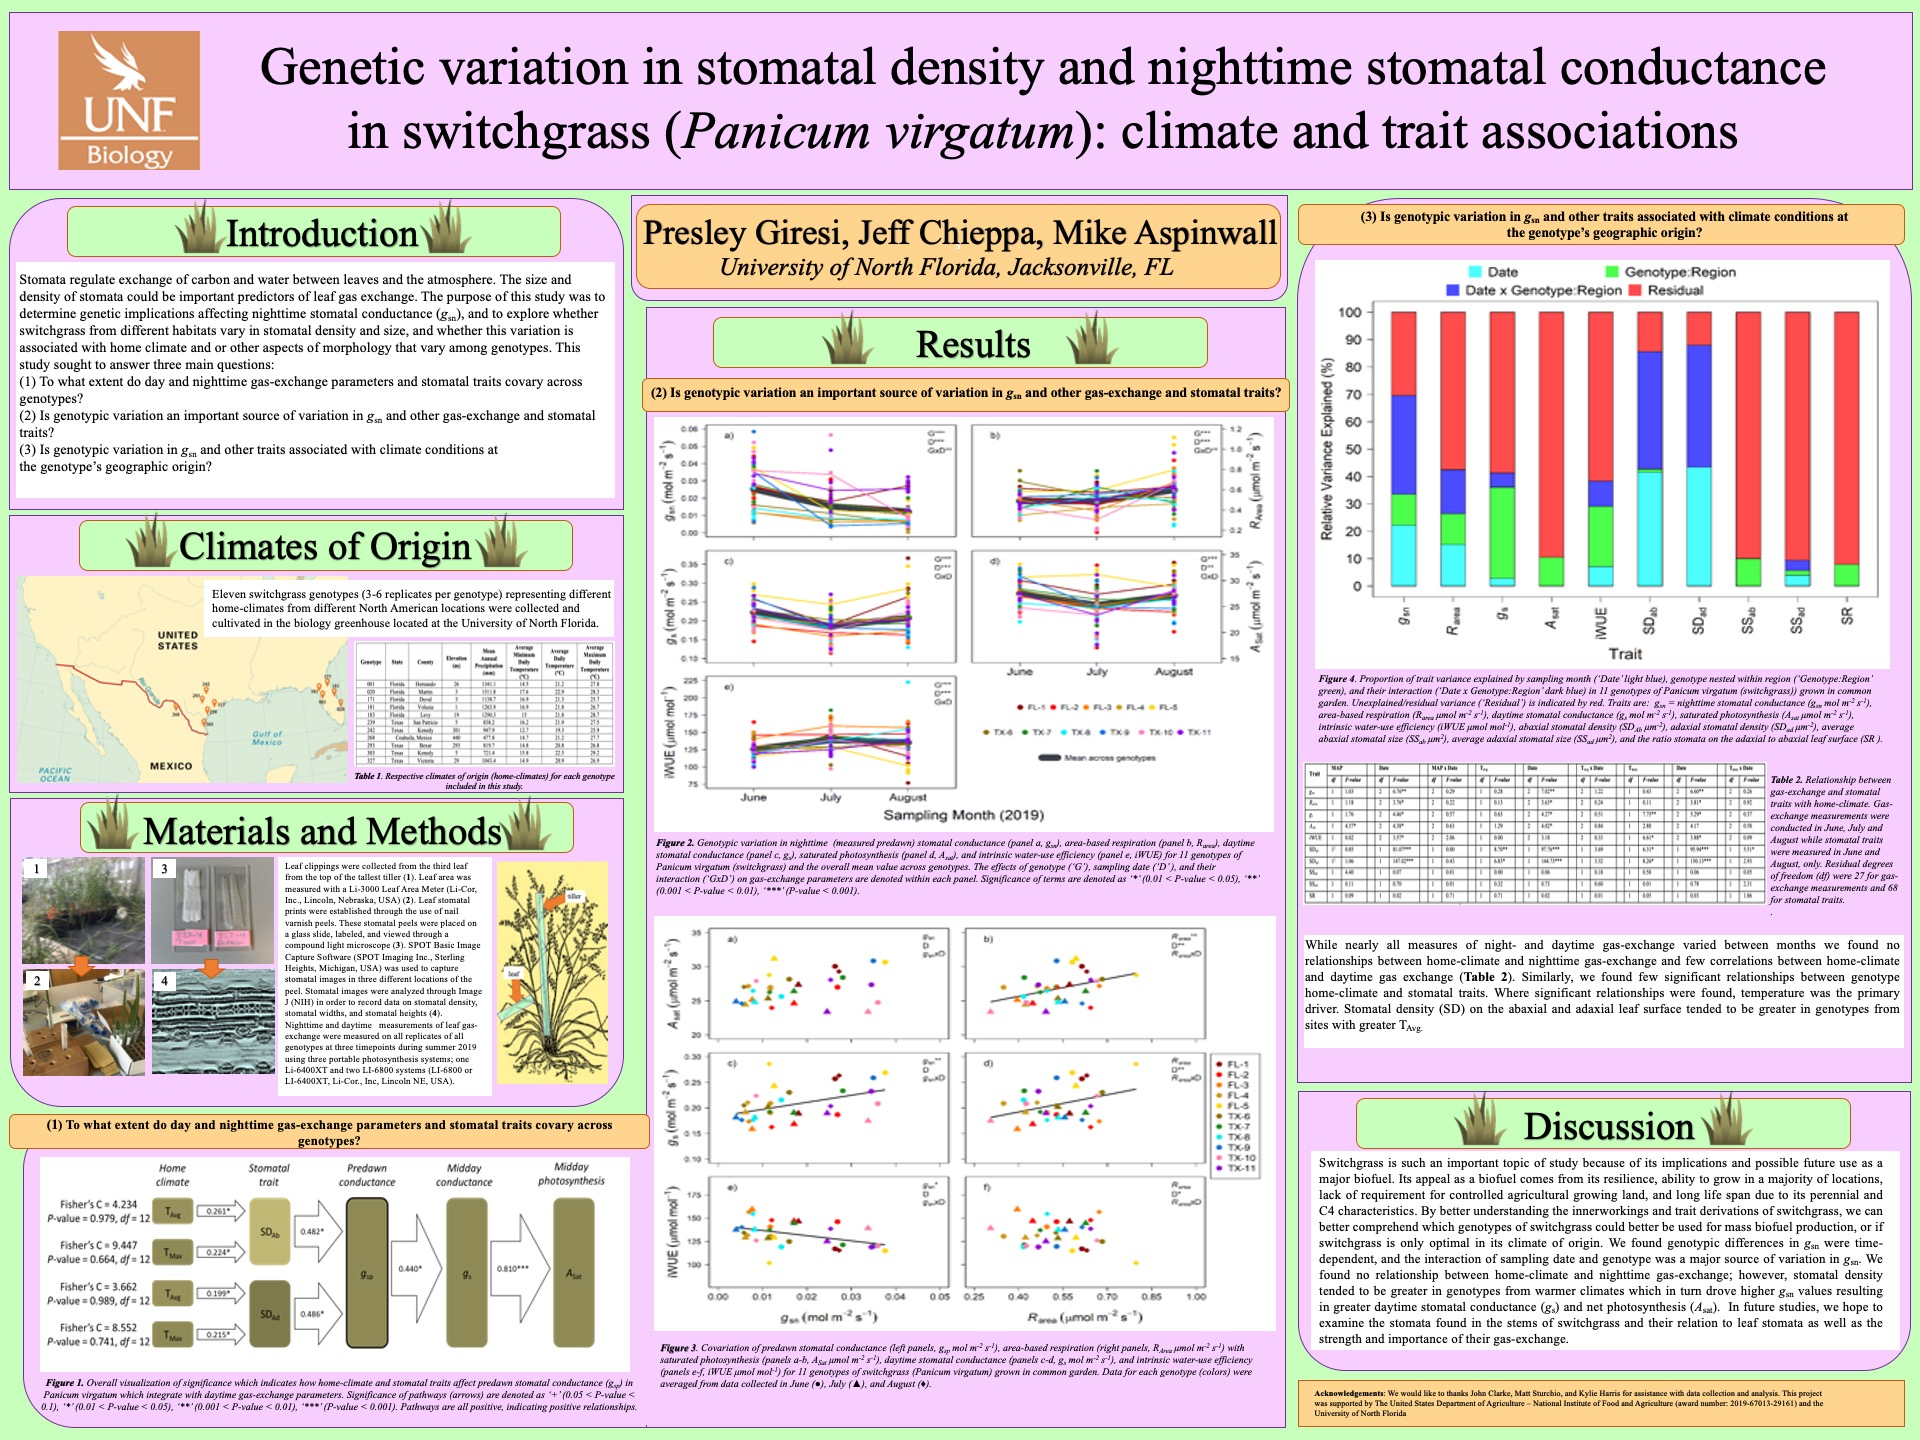 Genetic variation in stomatal density and nighttime stomatal conductance in switchgrass (Panicum virgatum): climate and trait associations poster